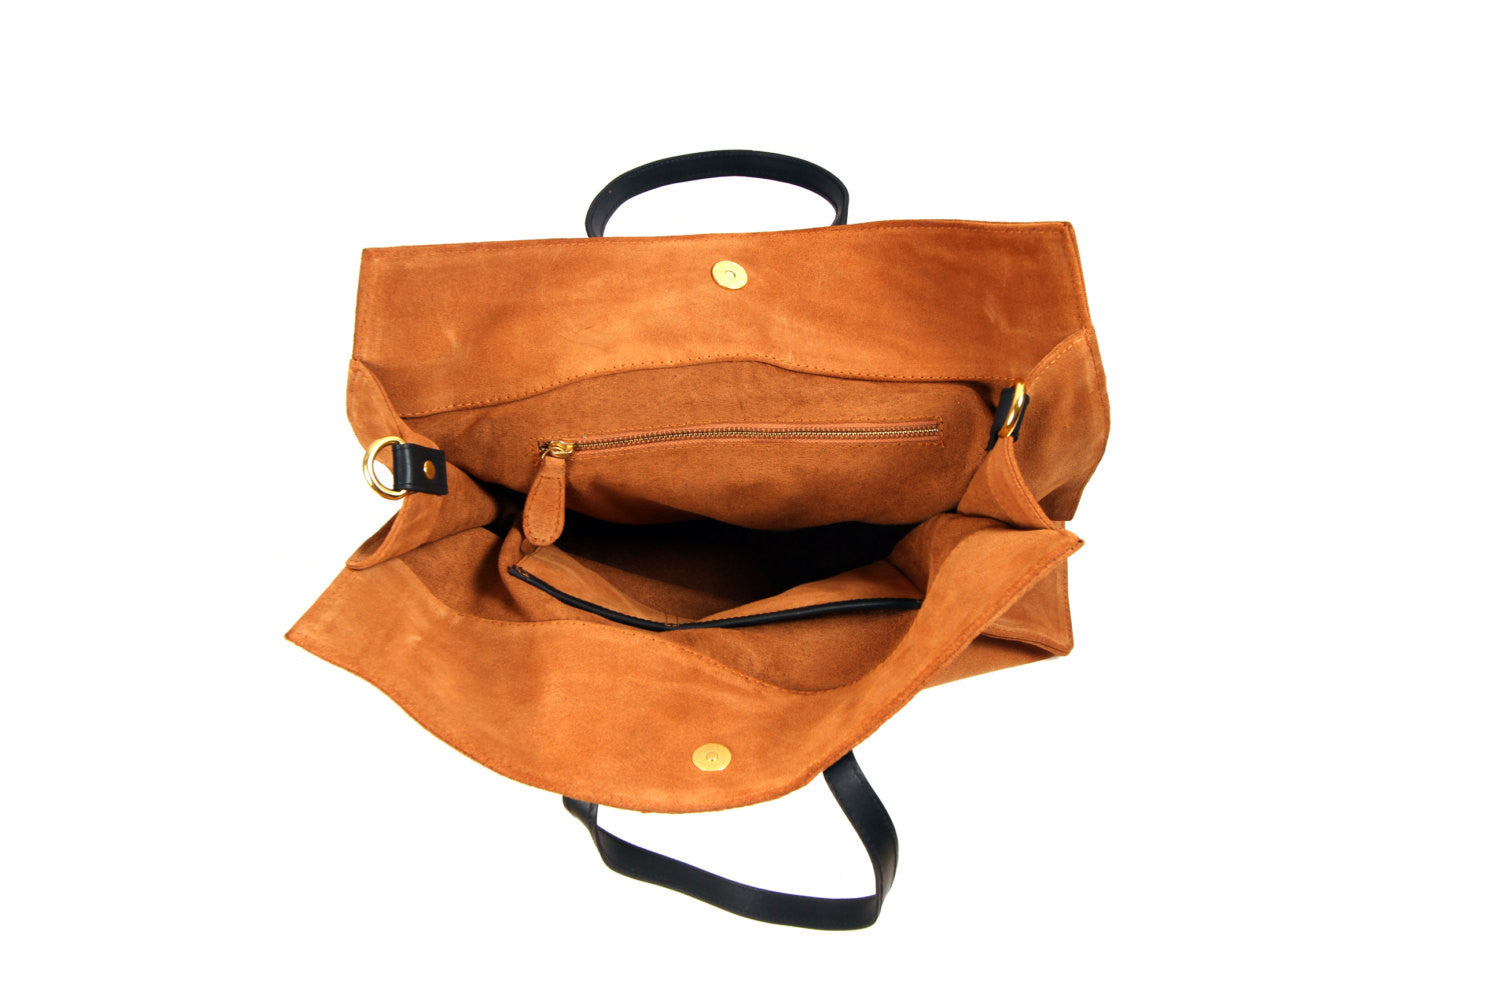 Tote, Leather Tote, Leathe tote, Camel Tote, Simple Seude Leather Tote, Tote bag, Tan Simple Tote